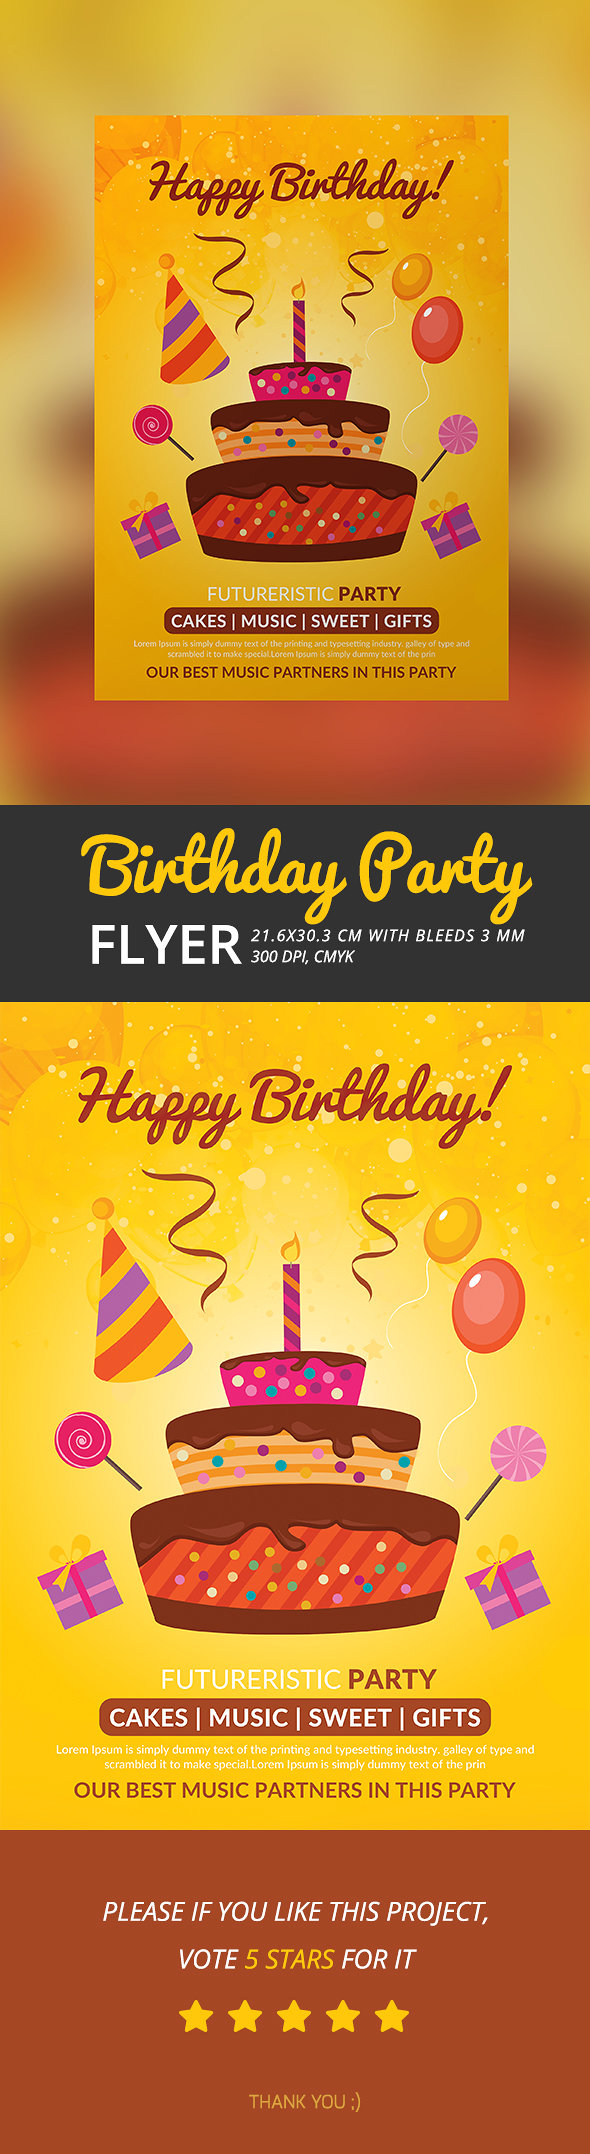 Birthday Party Poster/Flyer